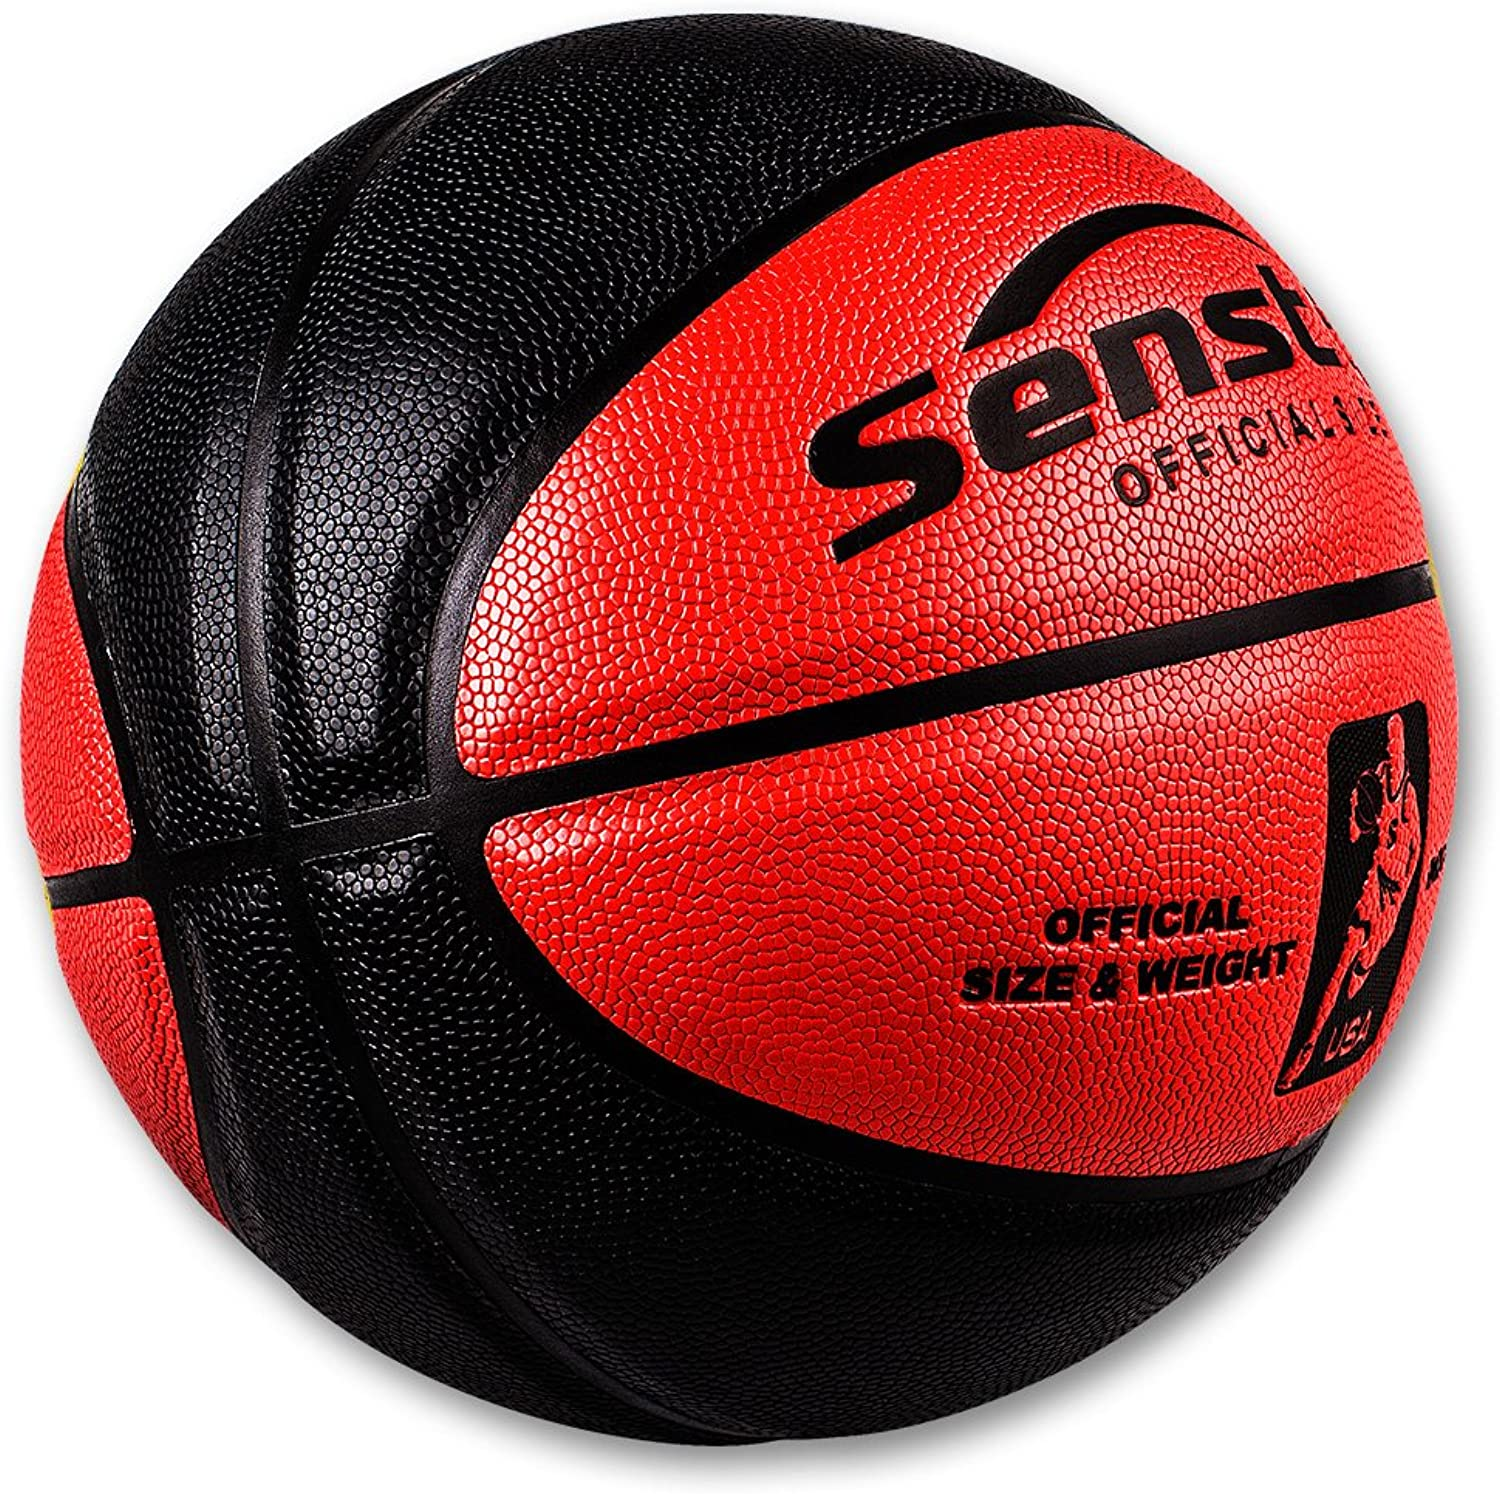 Senston PU Leather Basketball Ball Official Size 5 Size 7 Indoor Outdoor Basketball